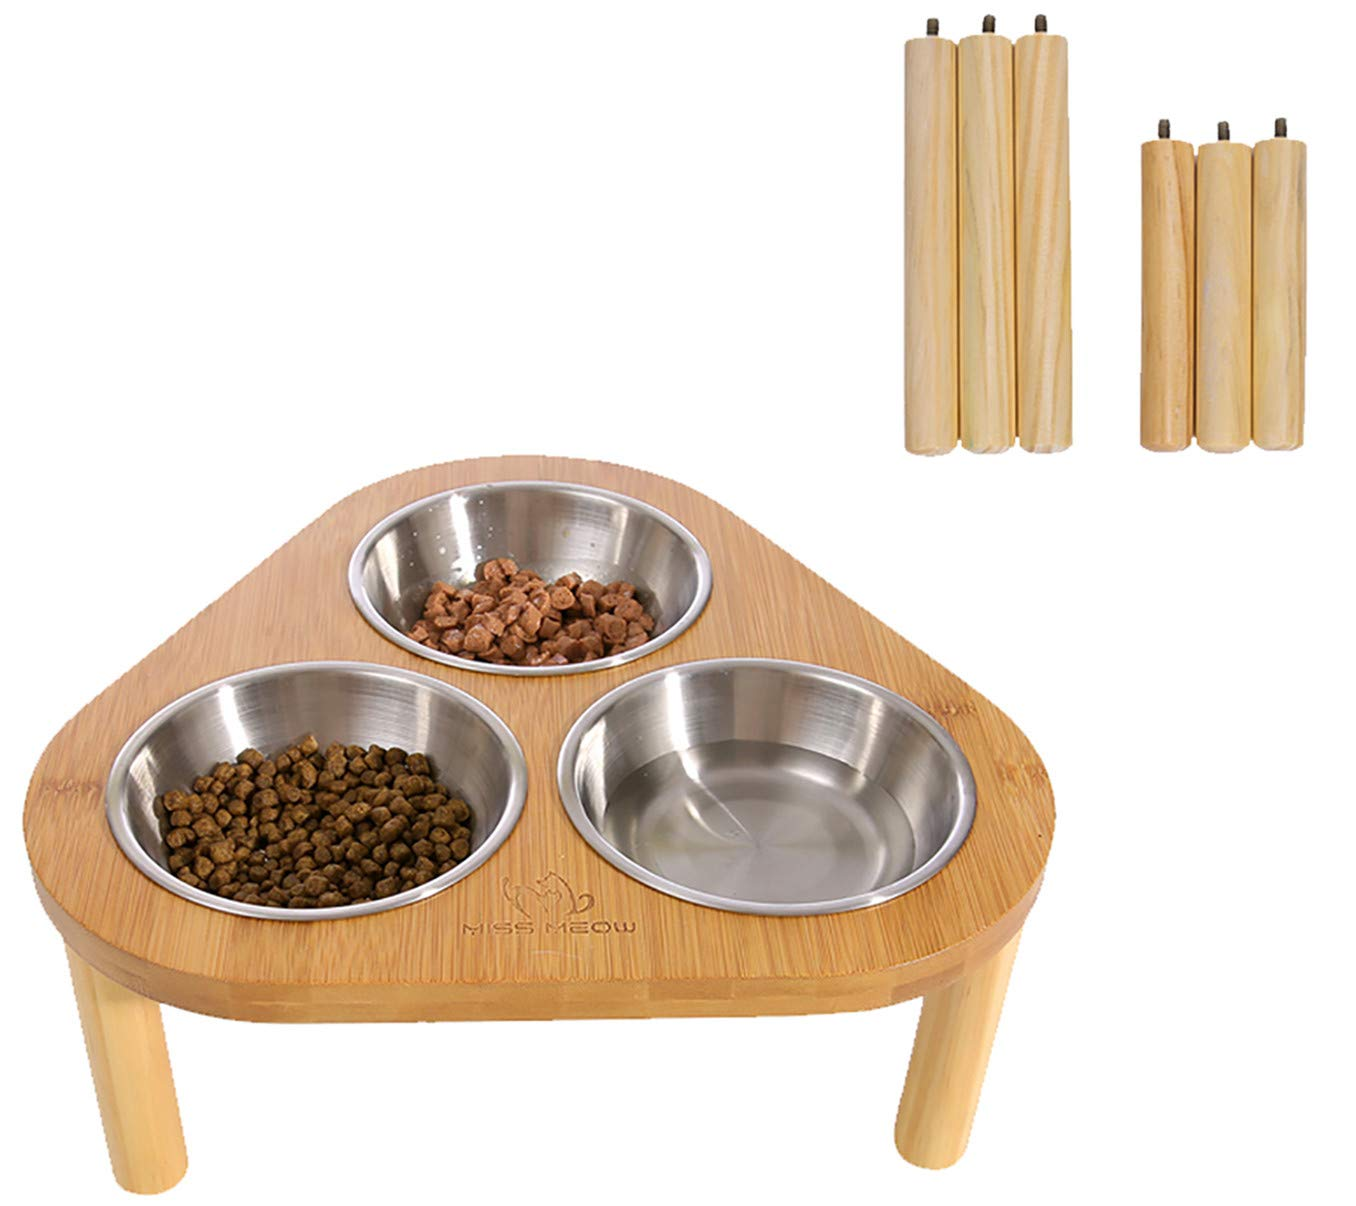 Miss Meow Raised Cat Dog Bowls with Stand Feeder, Elevated Bamboo Stand with 3 Stainless Still Bowls, Anti Slip and Removable Feet. (Stainless Still Bowls)